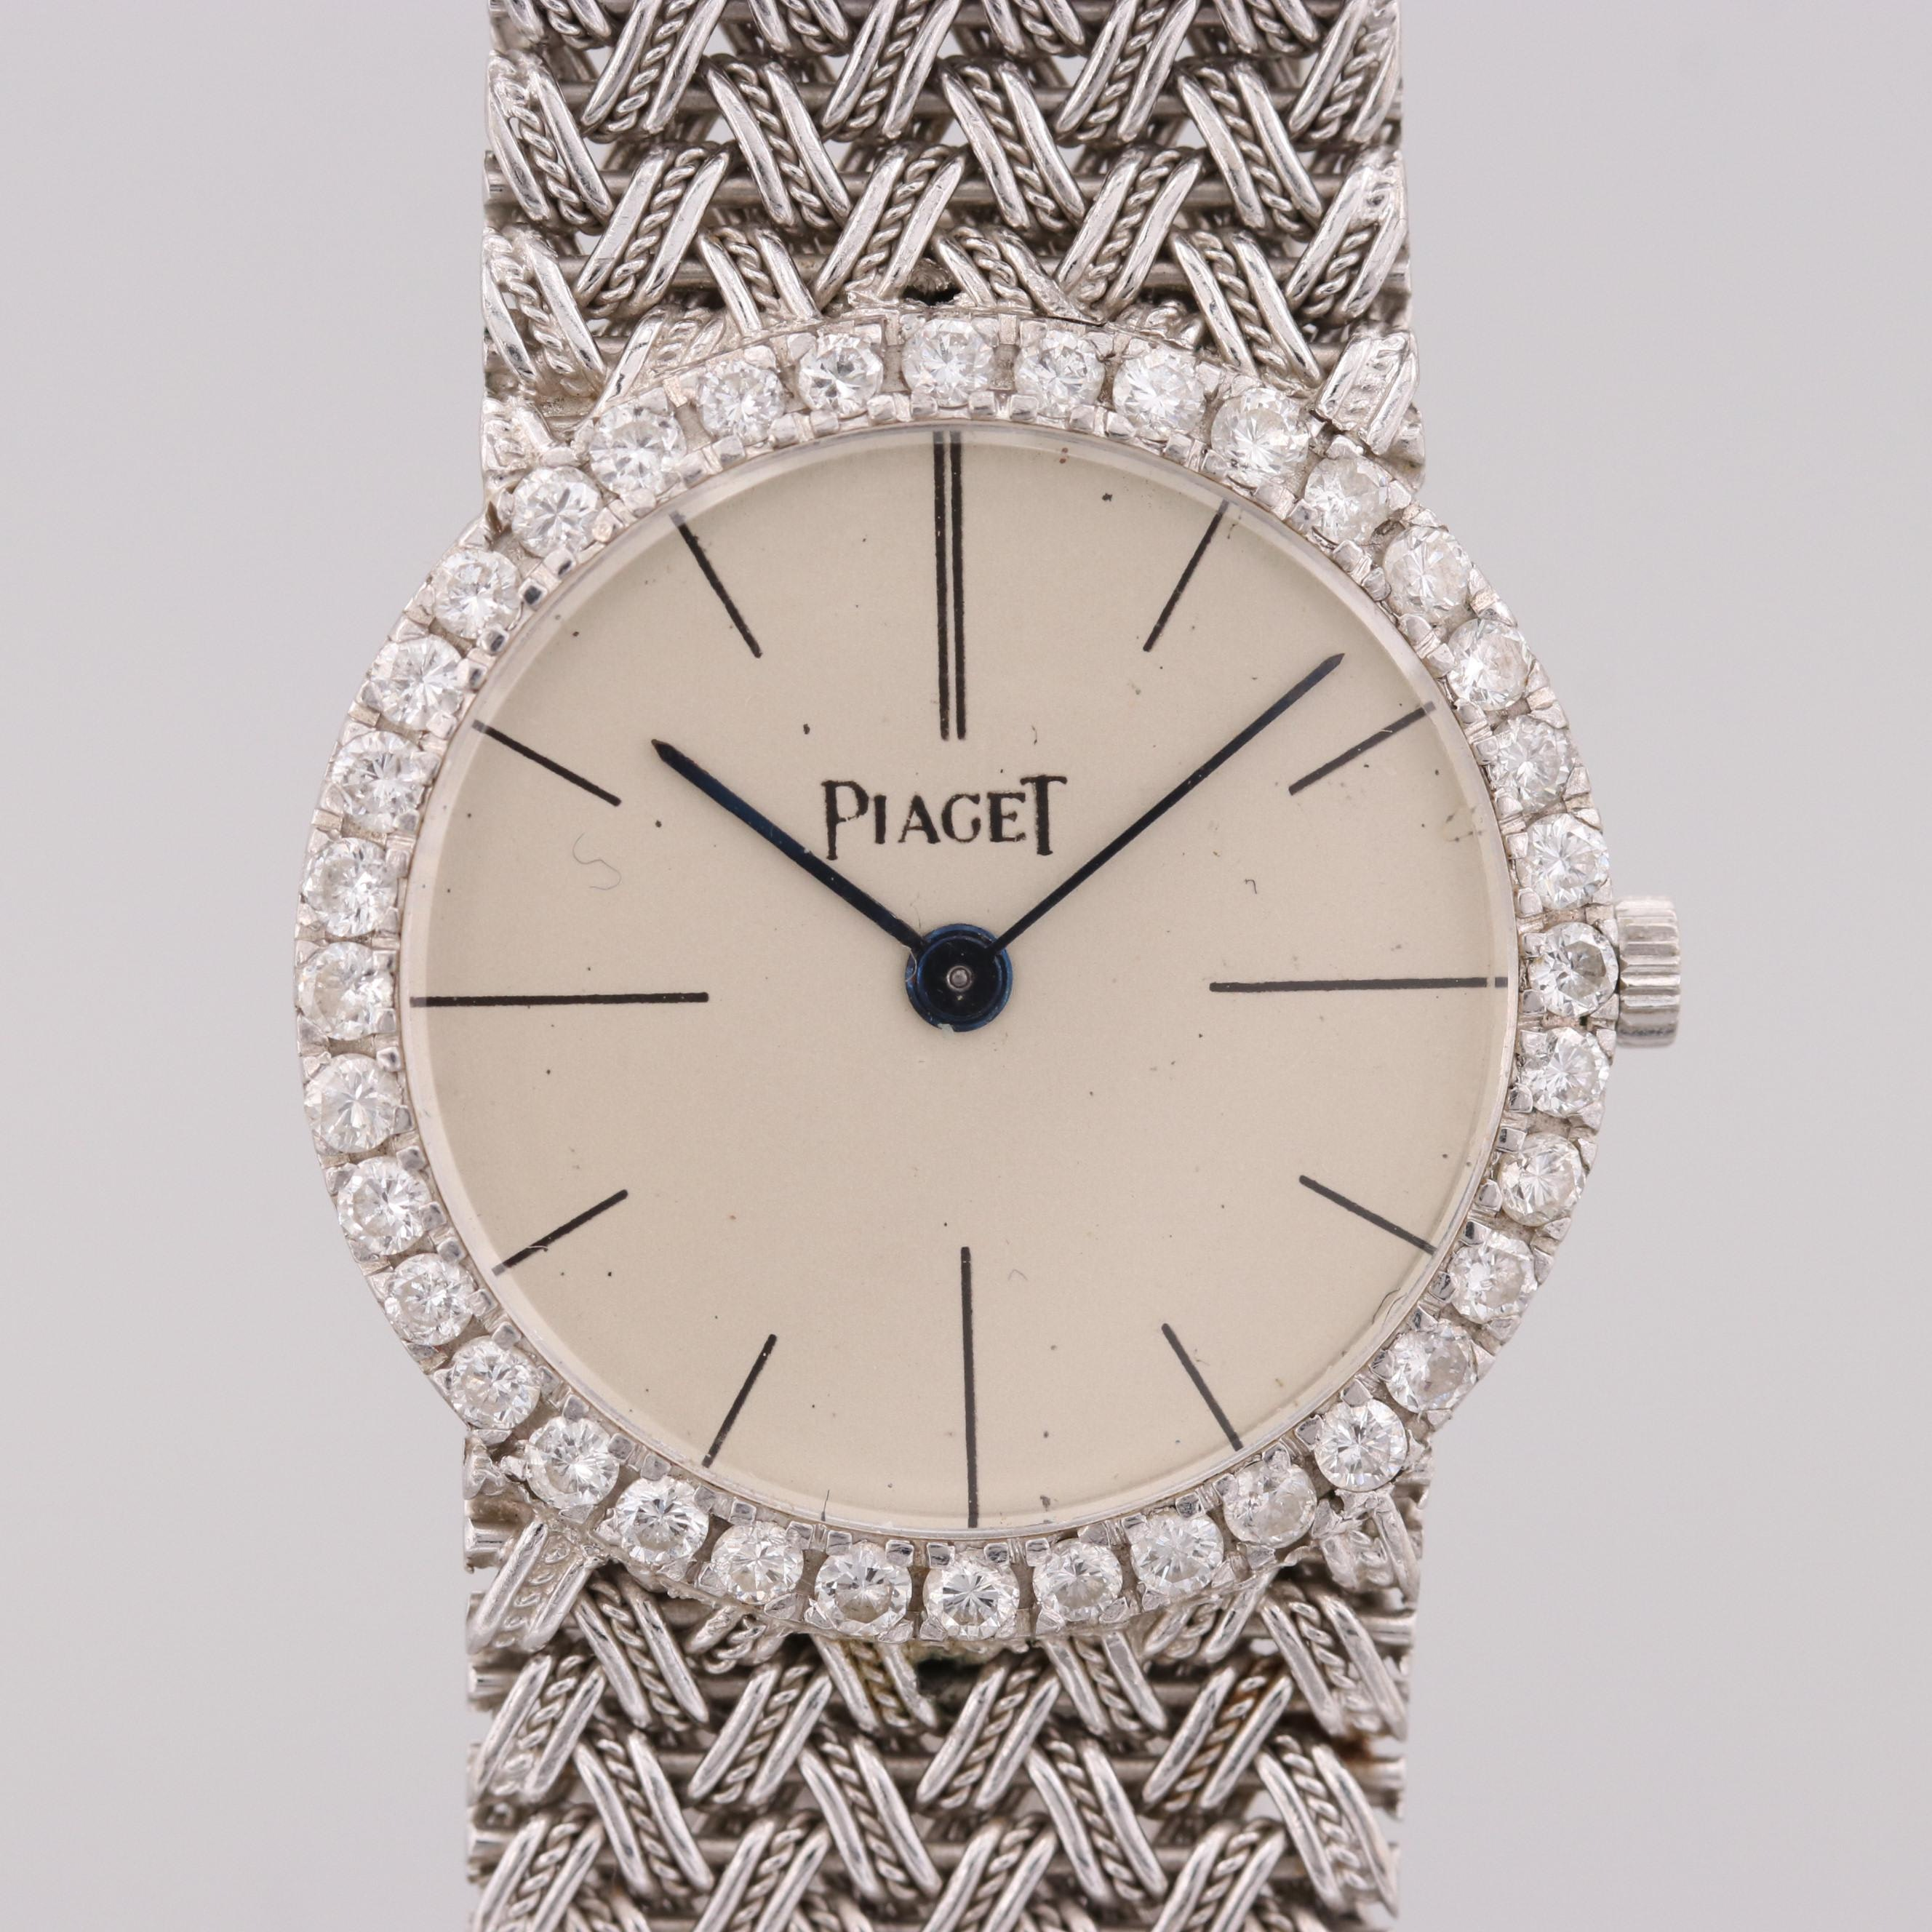 Vintage Piaget 18K White Gold Diamond Wristwatch